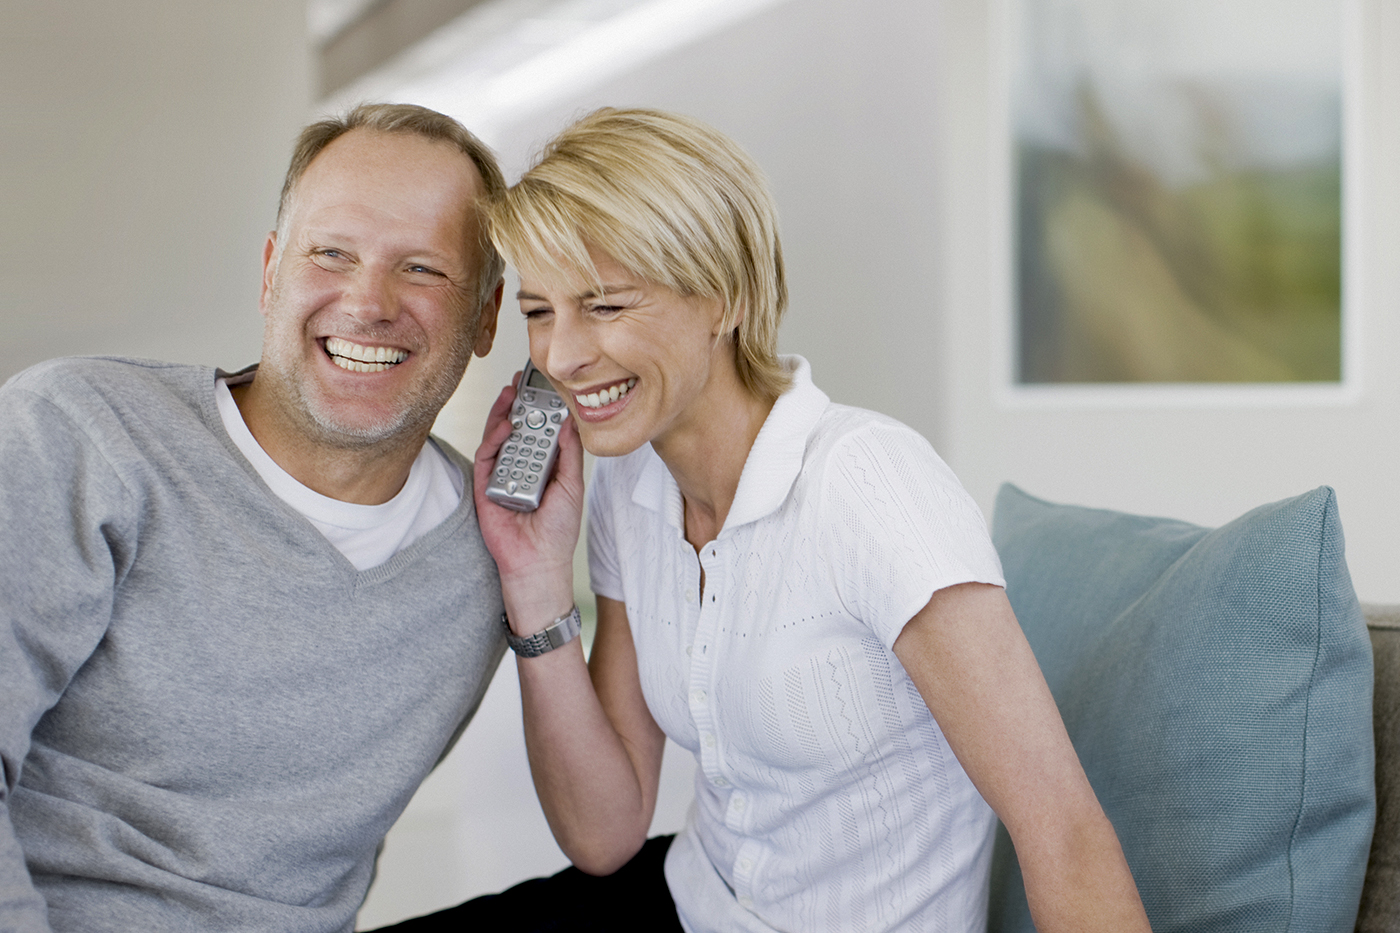 couple on couch talking on phone